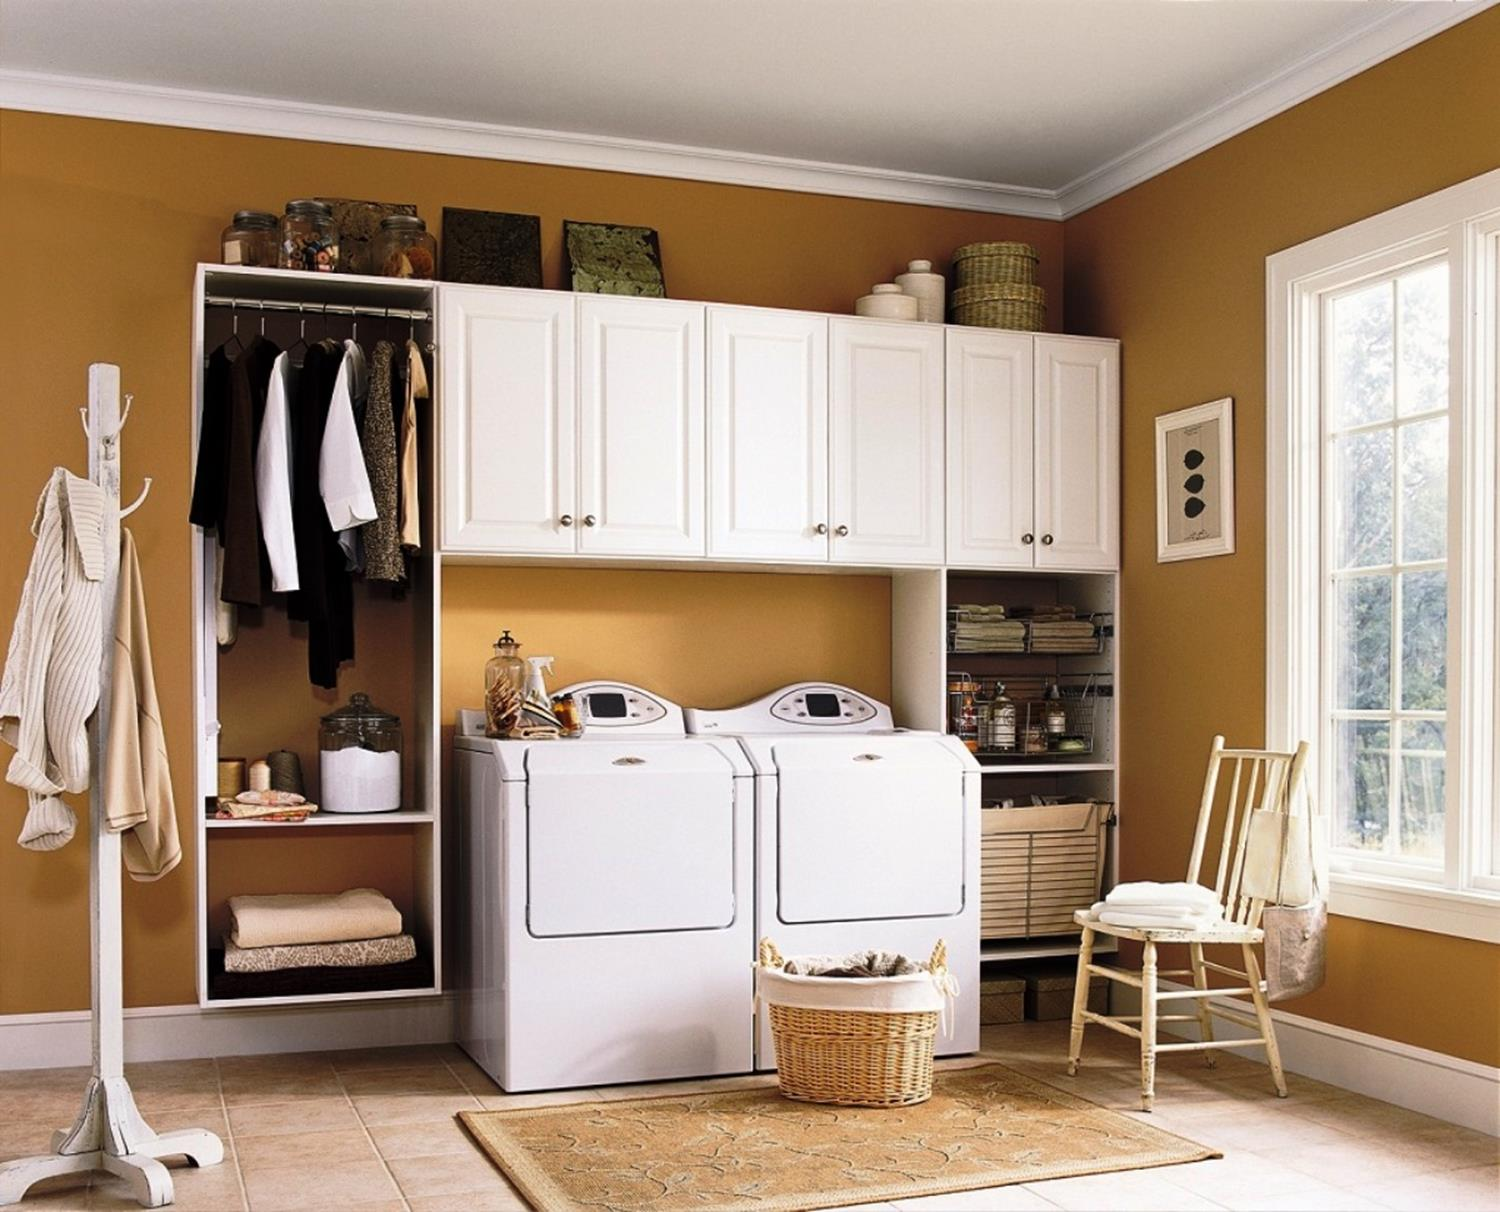 Laundry Room Accessories Decorations Ideas 9